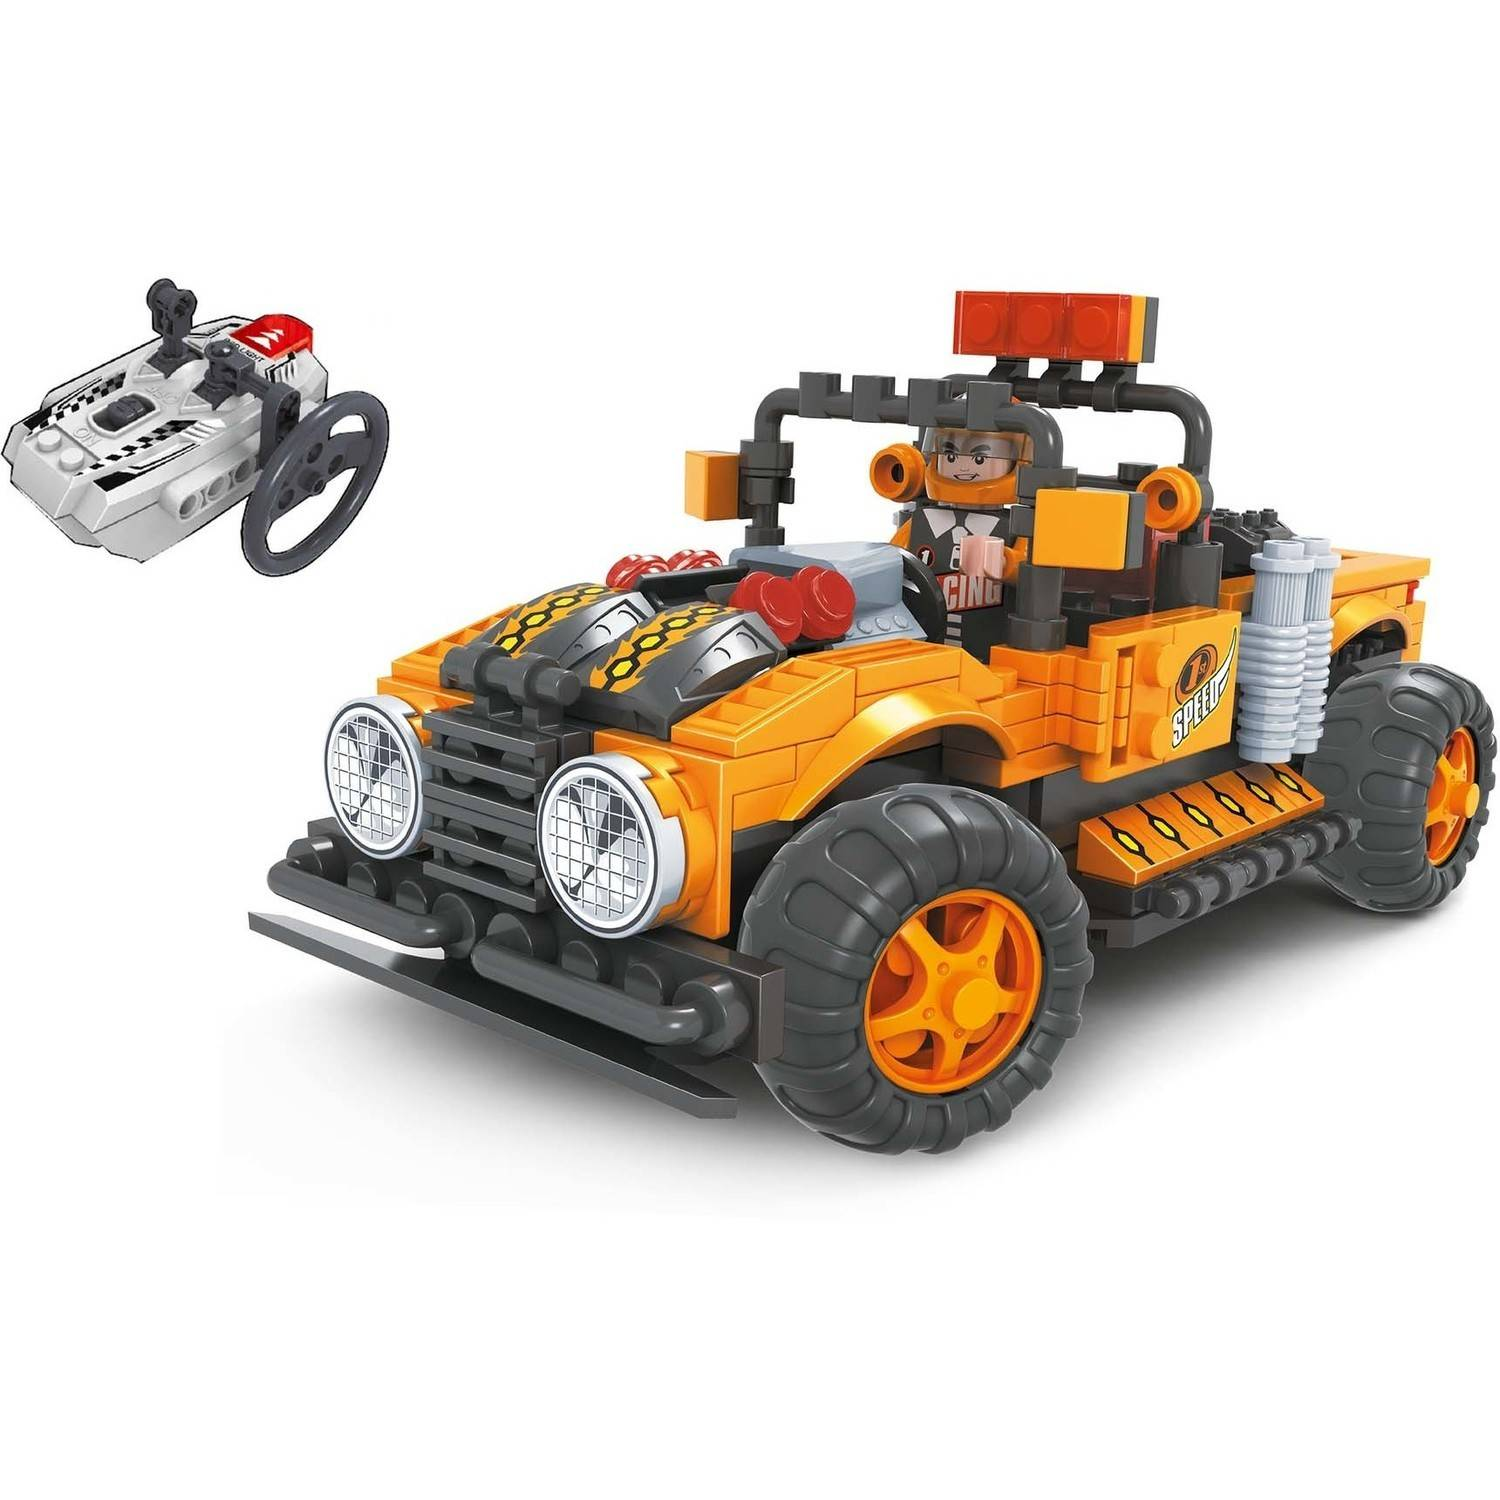 BRICTEK R C Action Off-Road Truck Orange by BRICTEK BUILDING BLOCKS